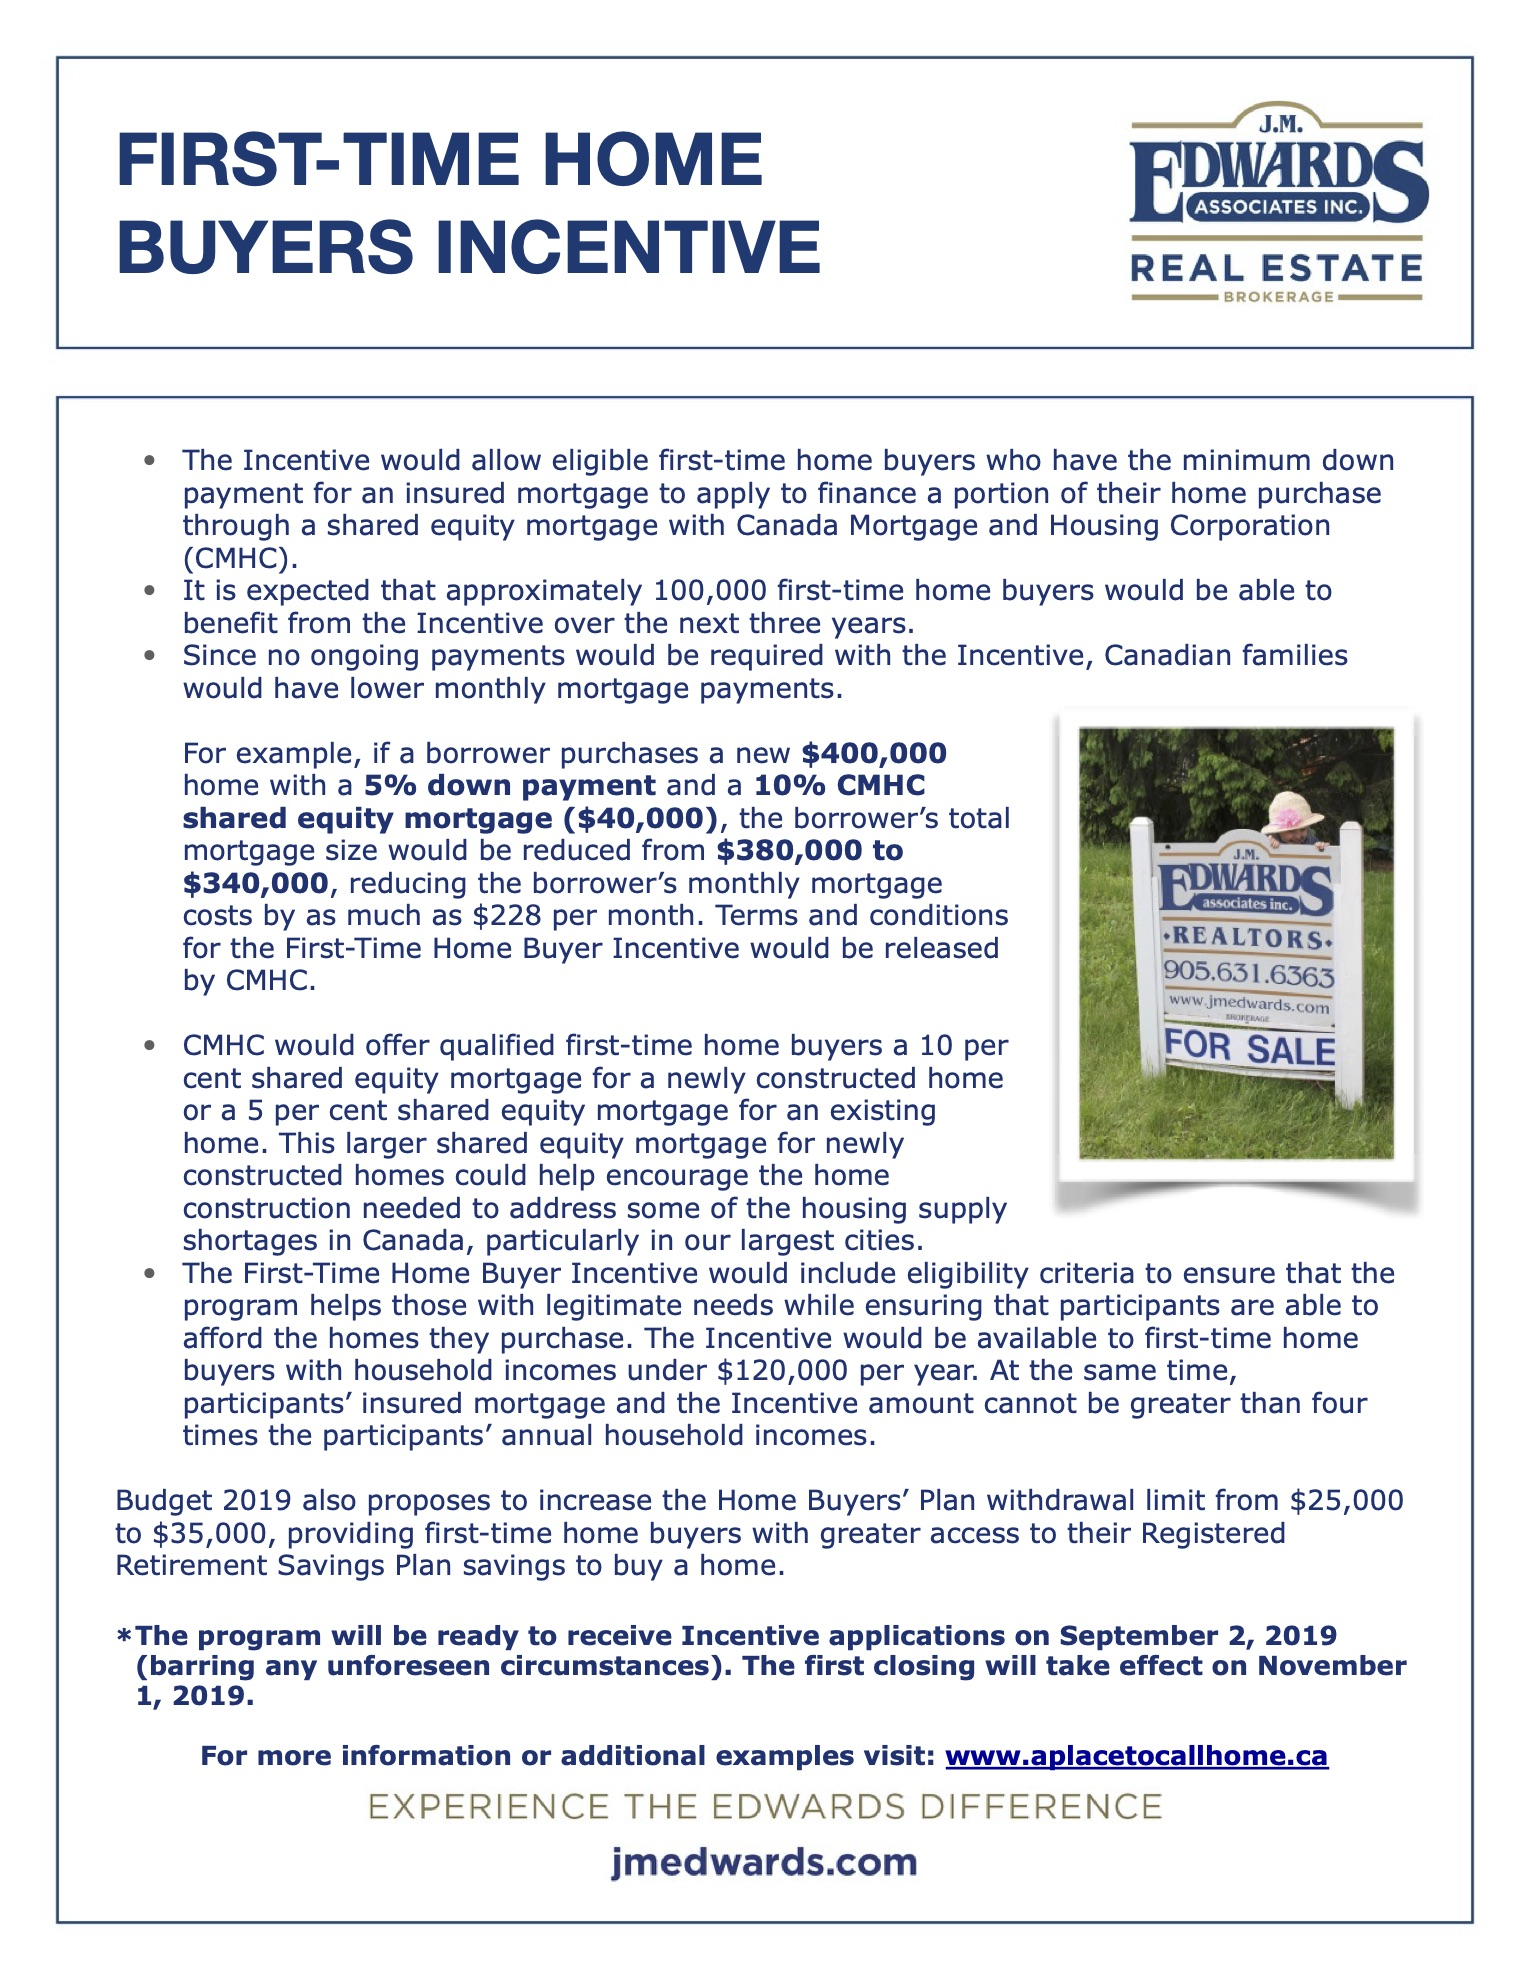 SUBMIT: FT06a - Home Buyer Incentive.jpg